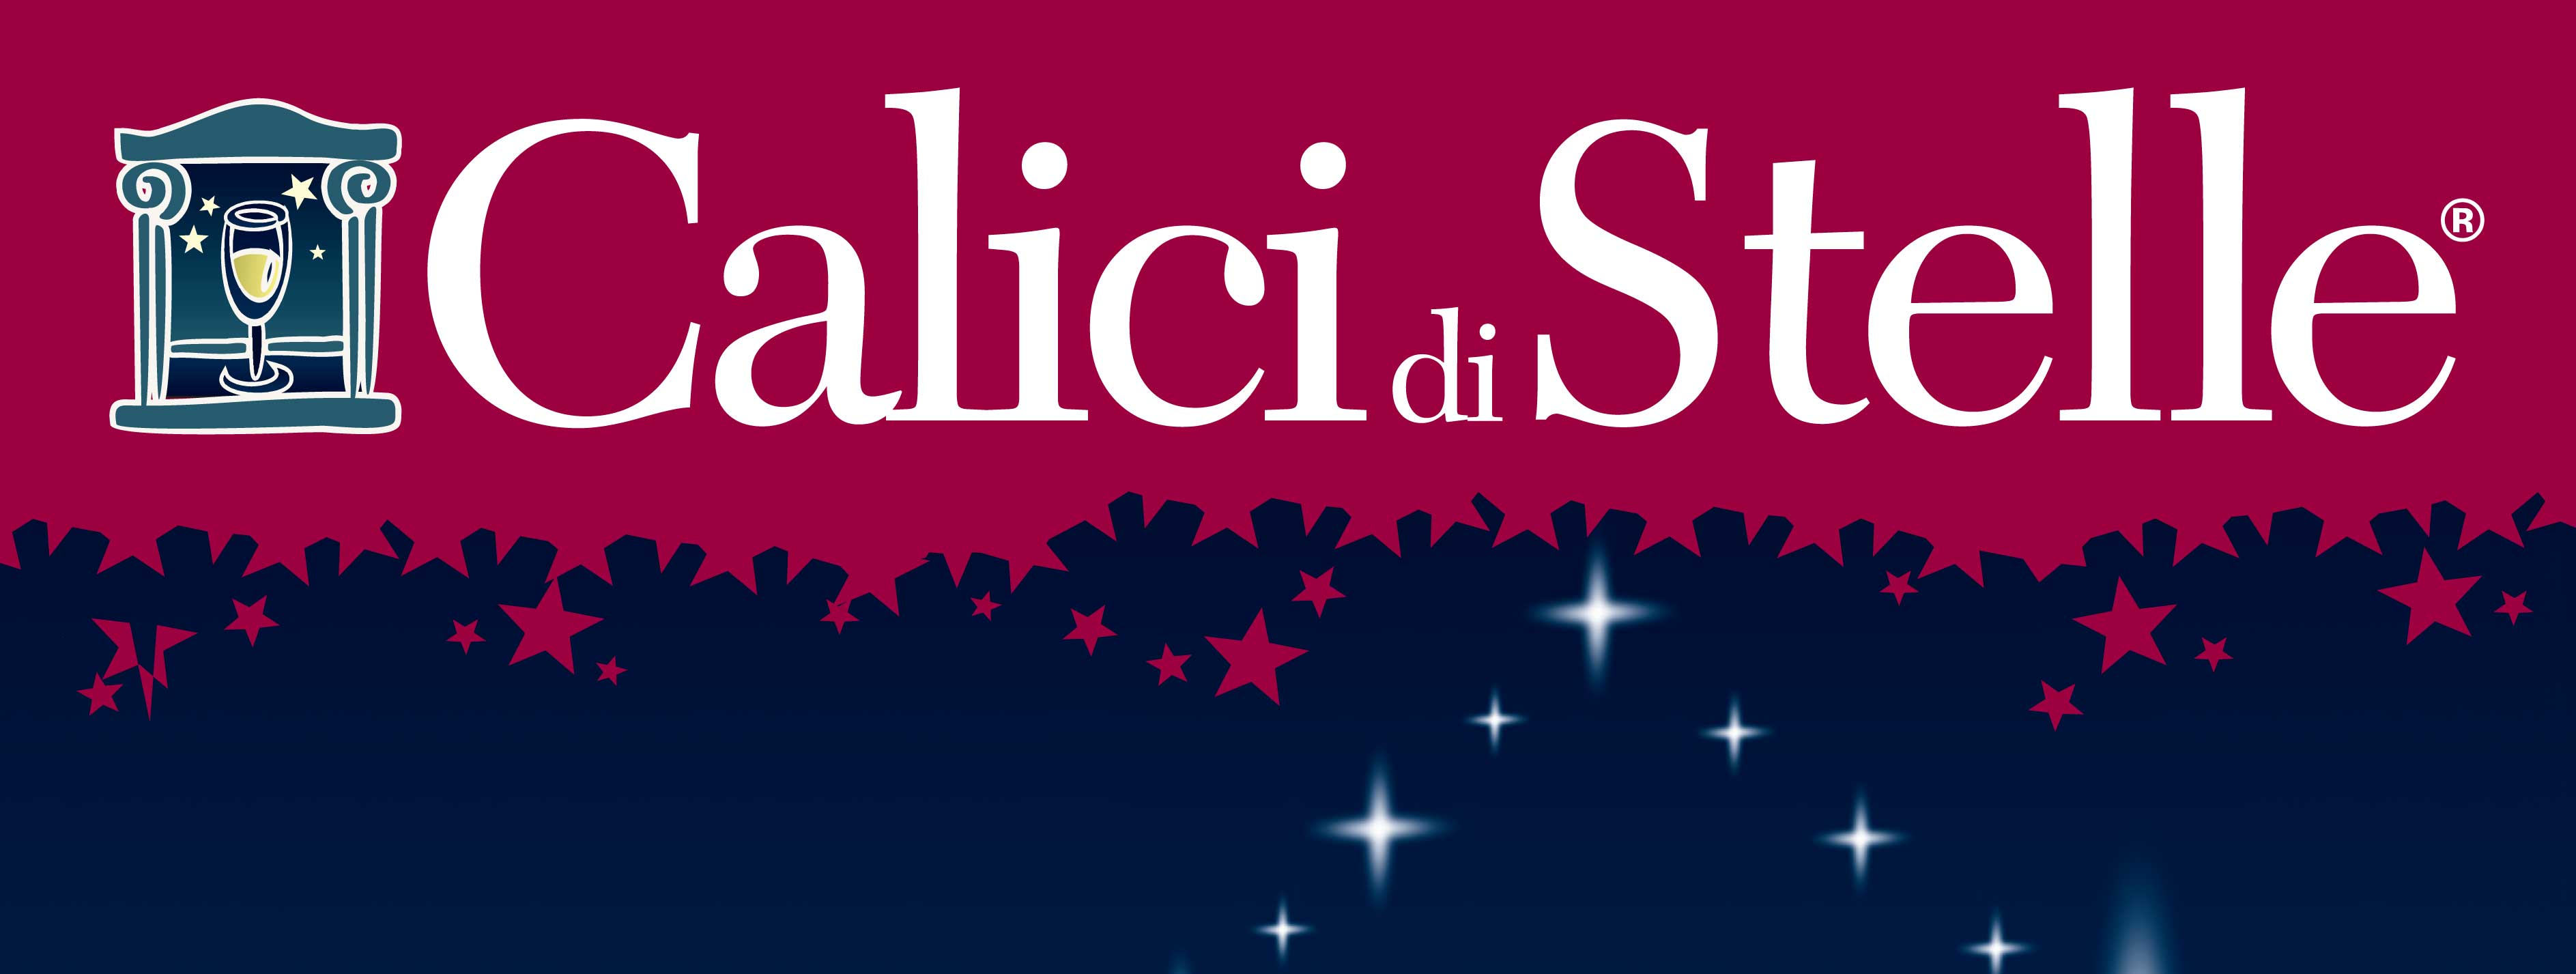 Calici di Stelle in Umbria